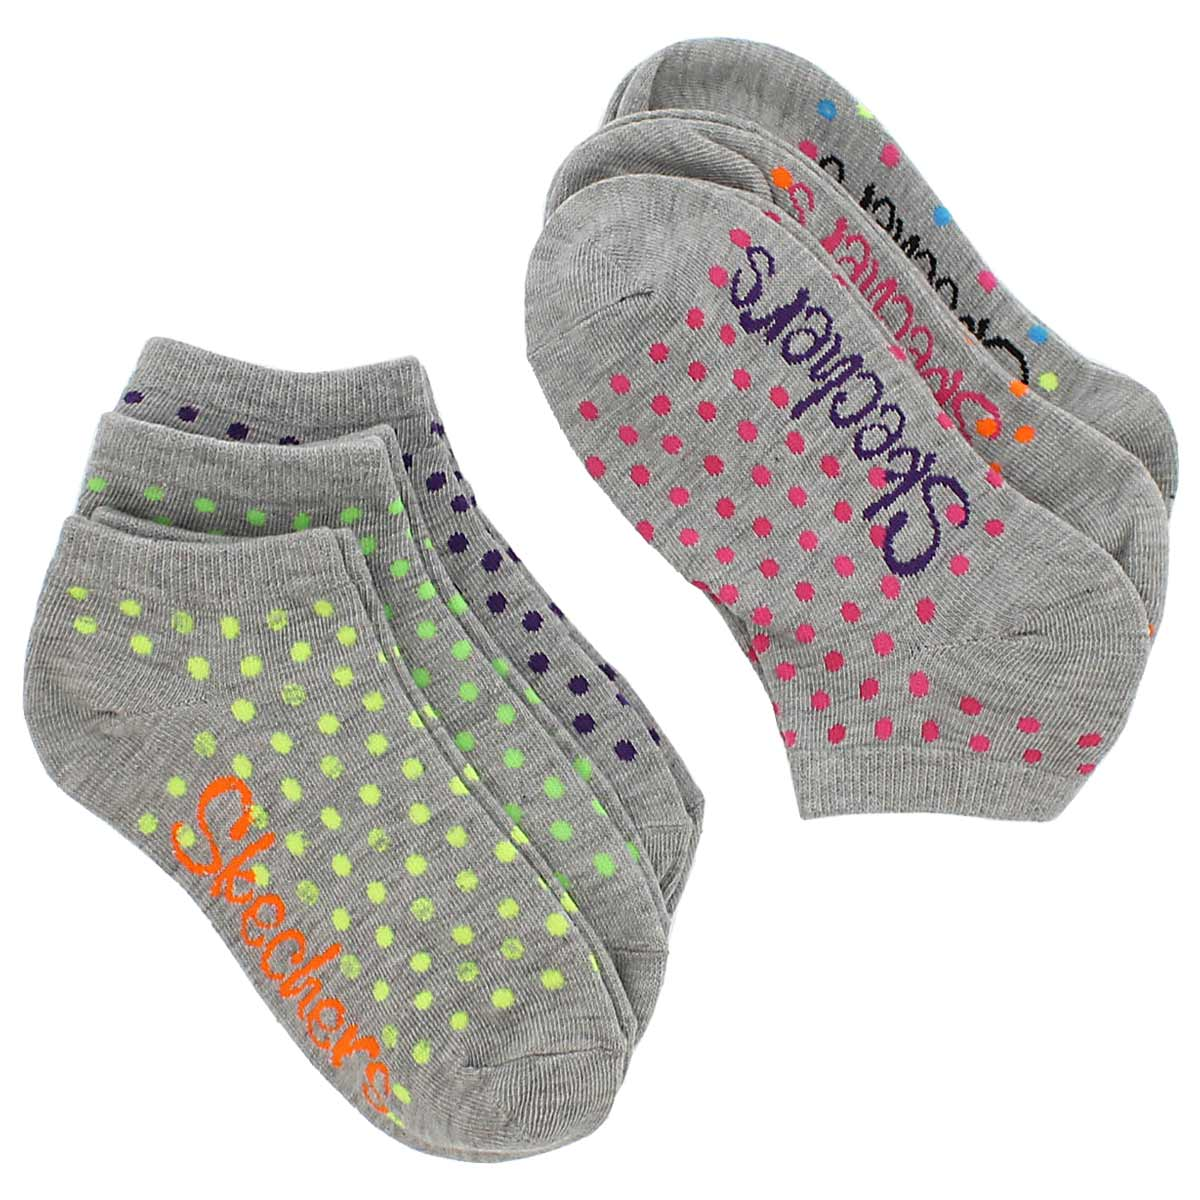 Grls Low Cut Fashion multi MED sock 6pk